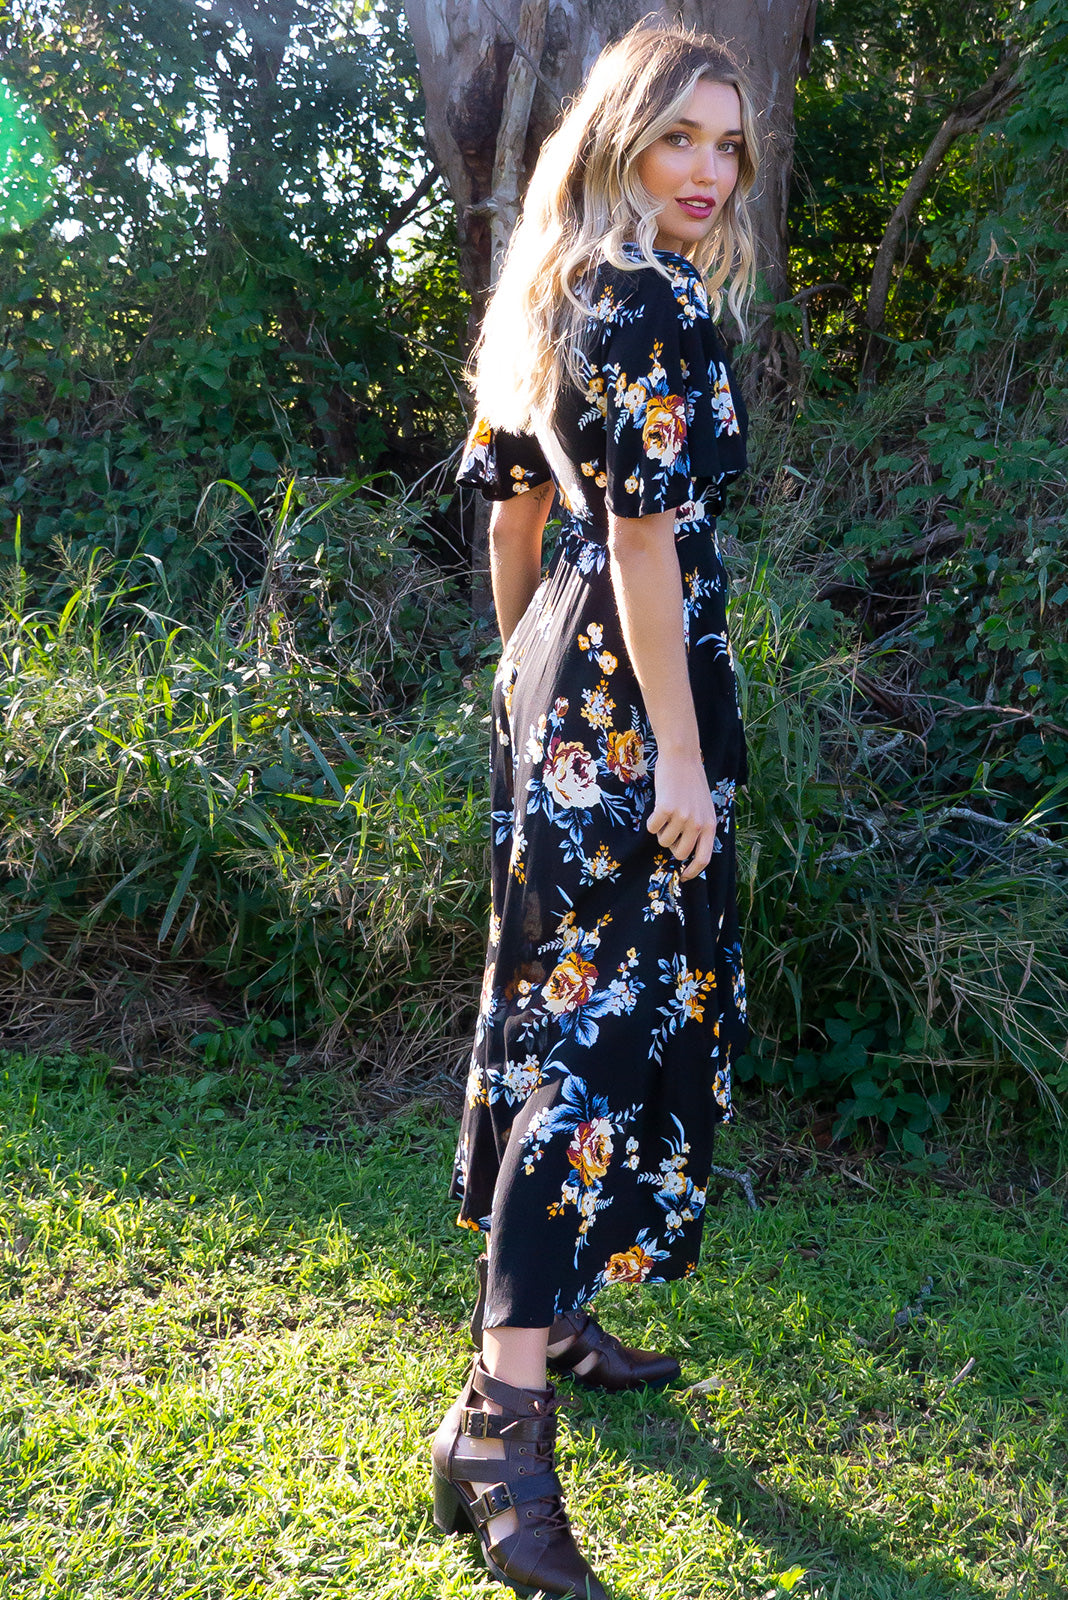 Petal Winter Nights Maxi Wrap Dress - Women's black floral rayon maxi wrap dress. Perfect for maternity, plus size, curvy, tall, petite, breastfeeding. Flowing design featuring bright contrasting print. Vintage style. Great for day to day, night out, date night etc. Designed in Brisbane Australia